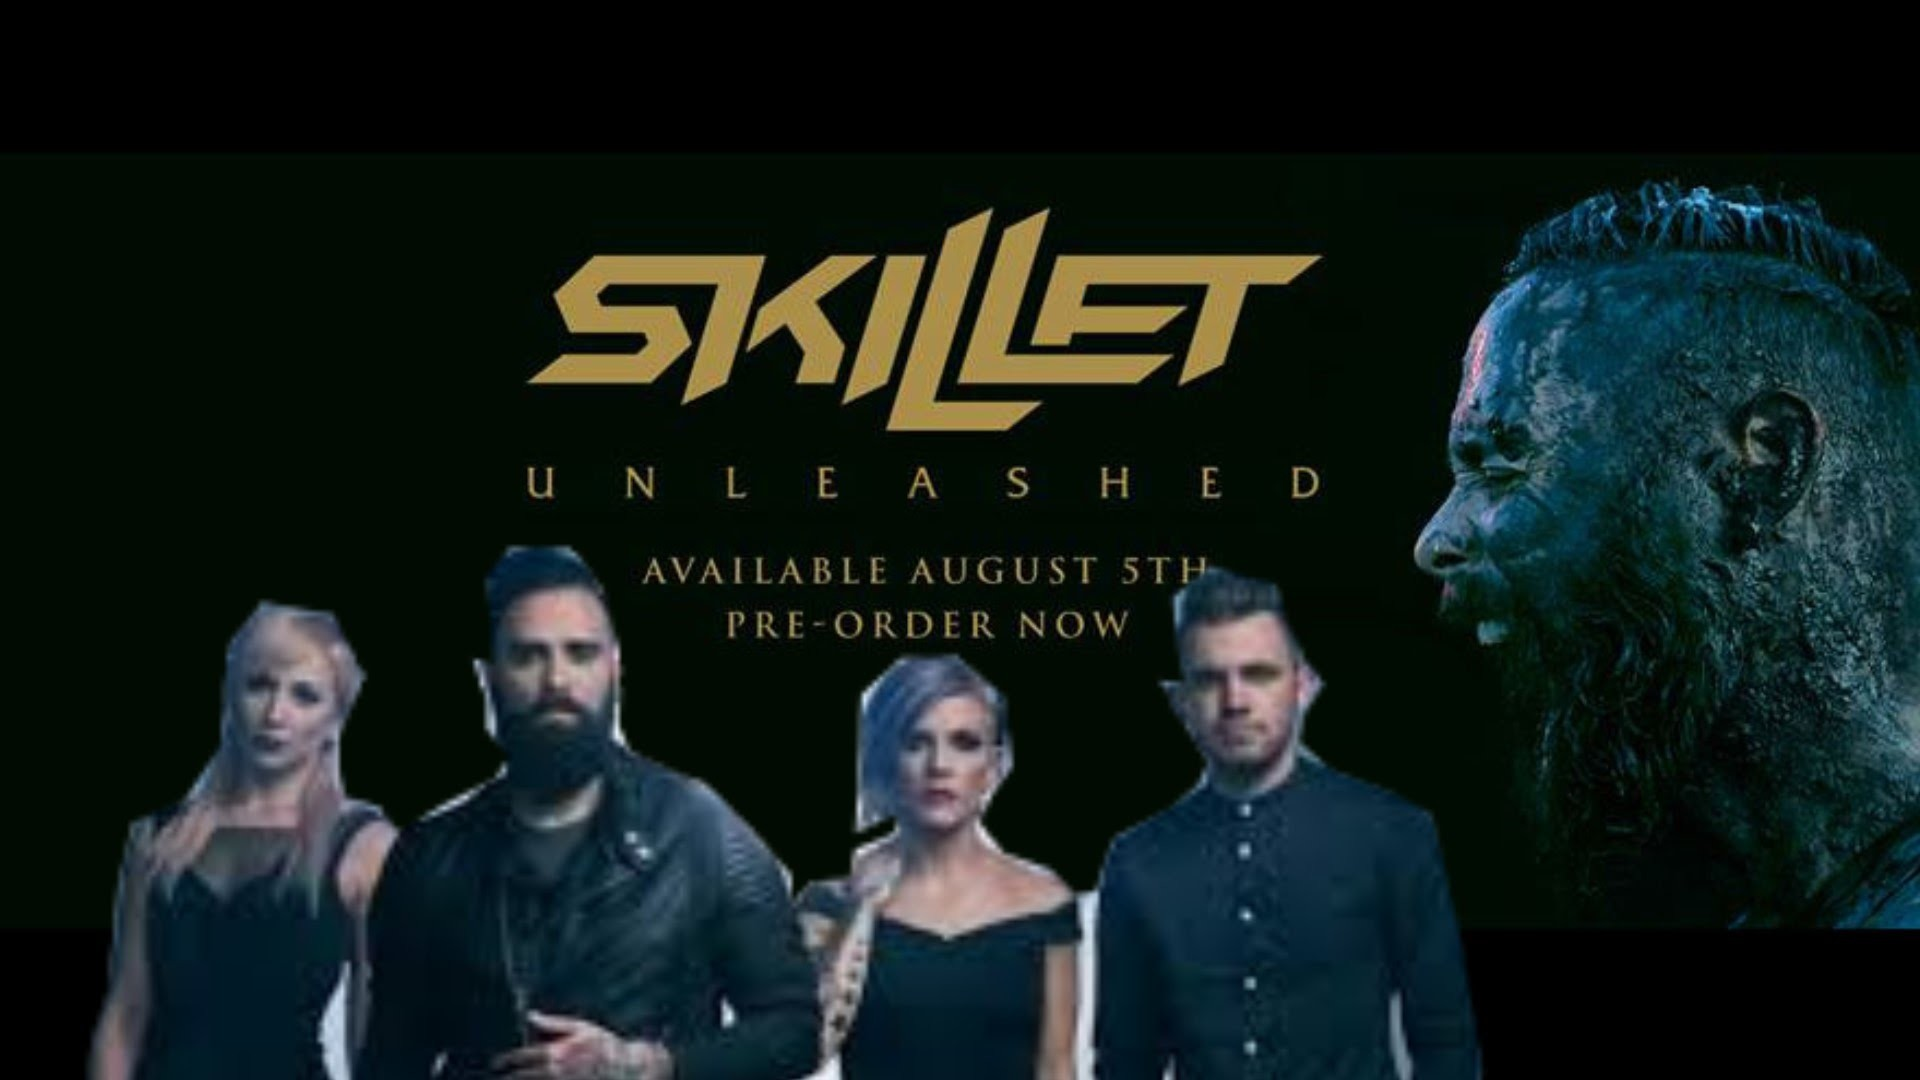 1920x1080 My thoughts on Skillet & #UNLEASHED | Share with Skillet!